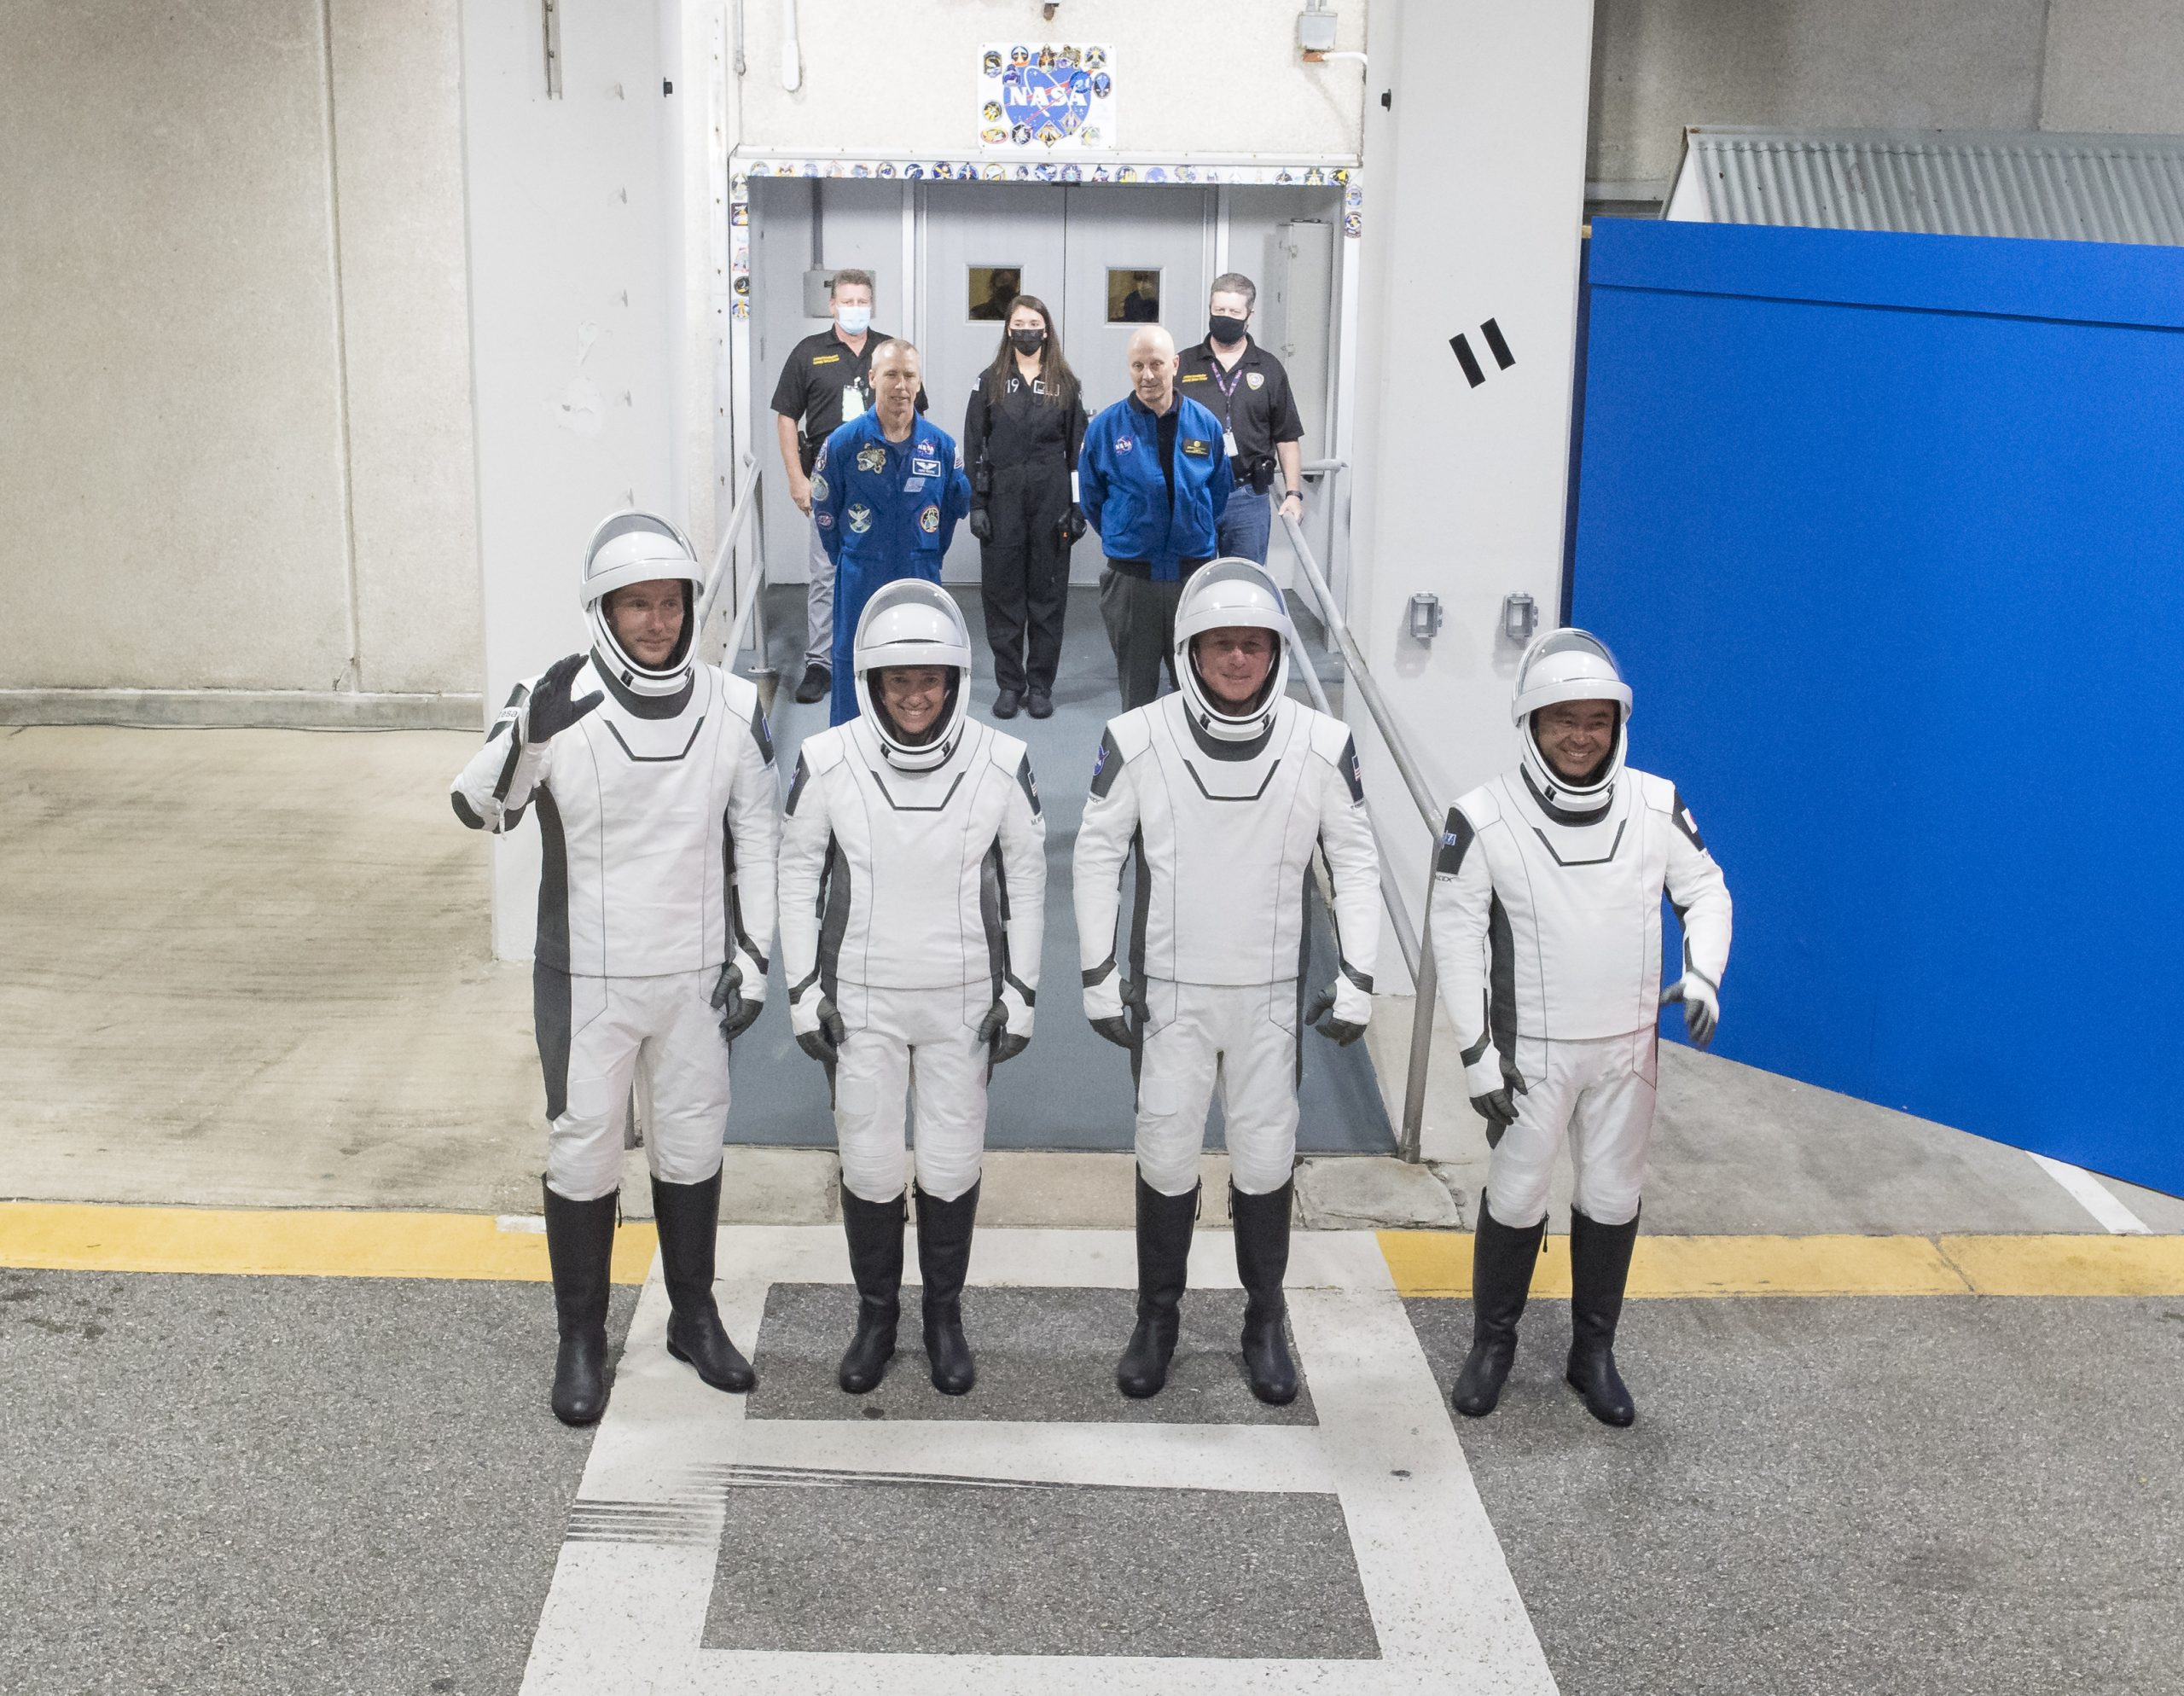 Crew-2 Astronauts and NASA SpaceX Launch Teams Practice Procedures and Complete Static Fire Test for April 22 Launch